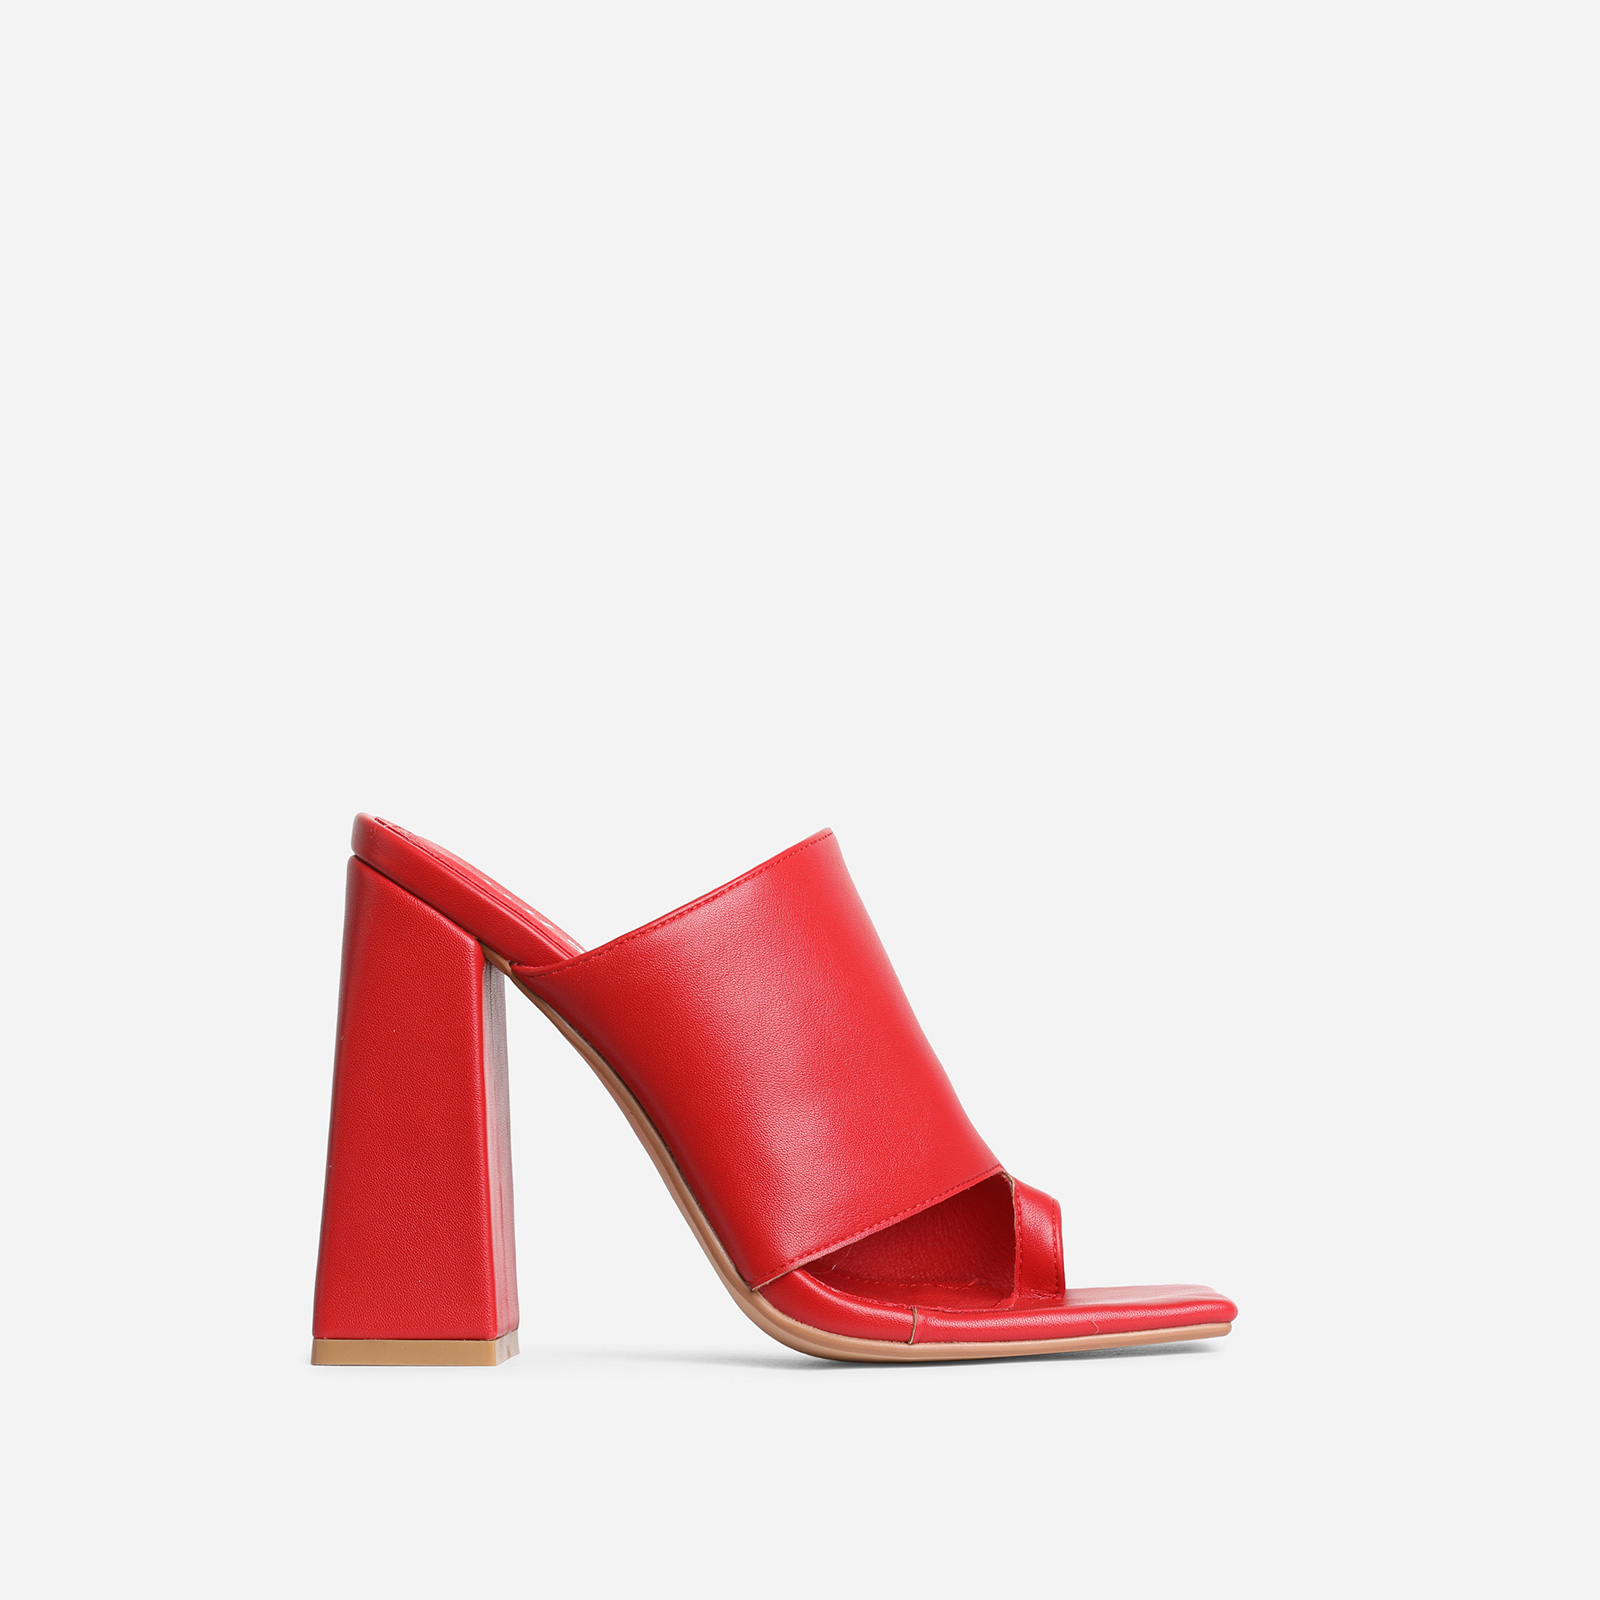 Anfo Square Peep Toe Flared Block Heel Mule In Red Faux Leather